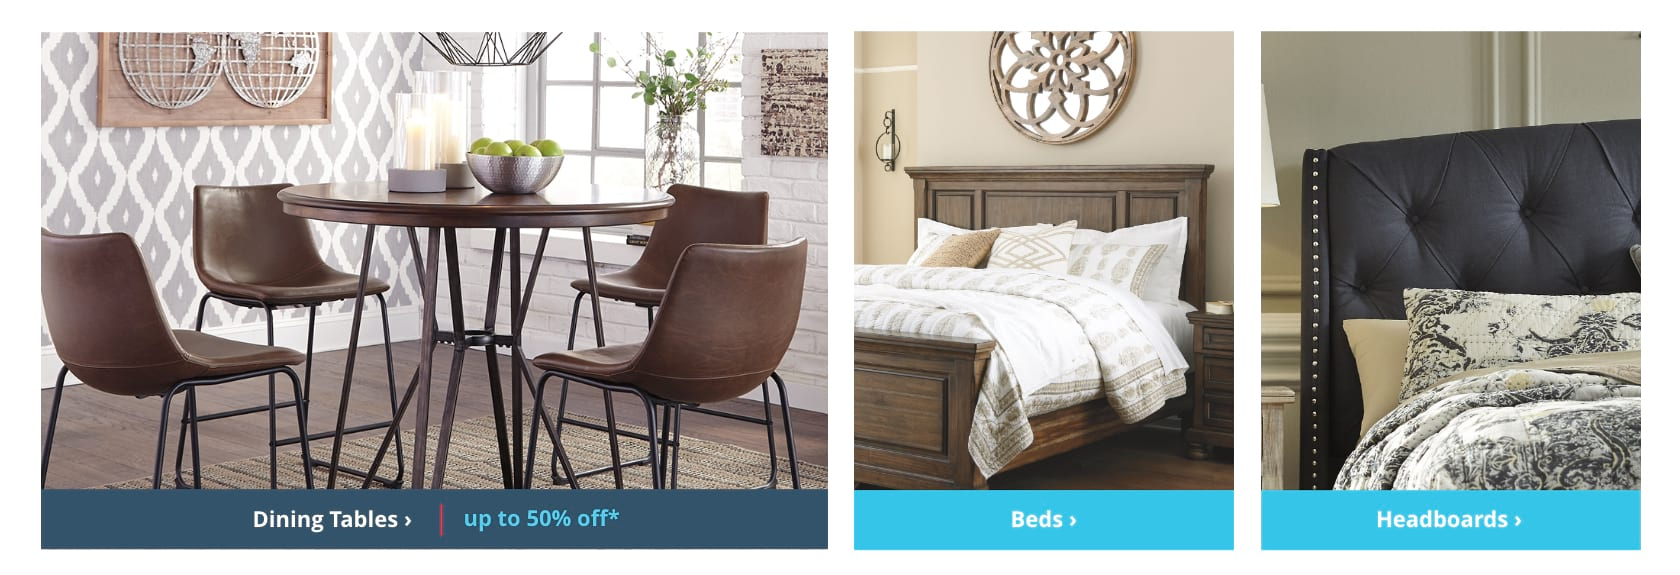 Shop Dining Tables, Beds, Headboards